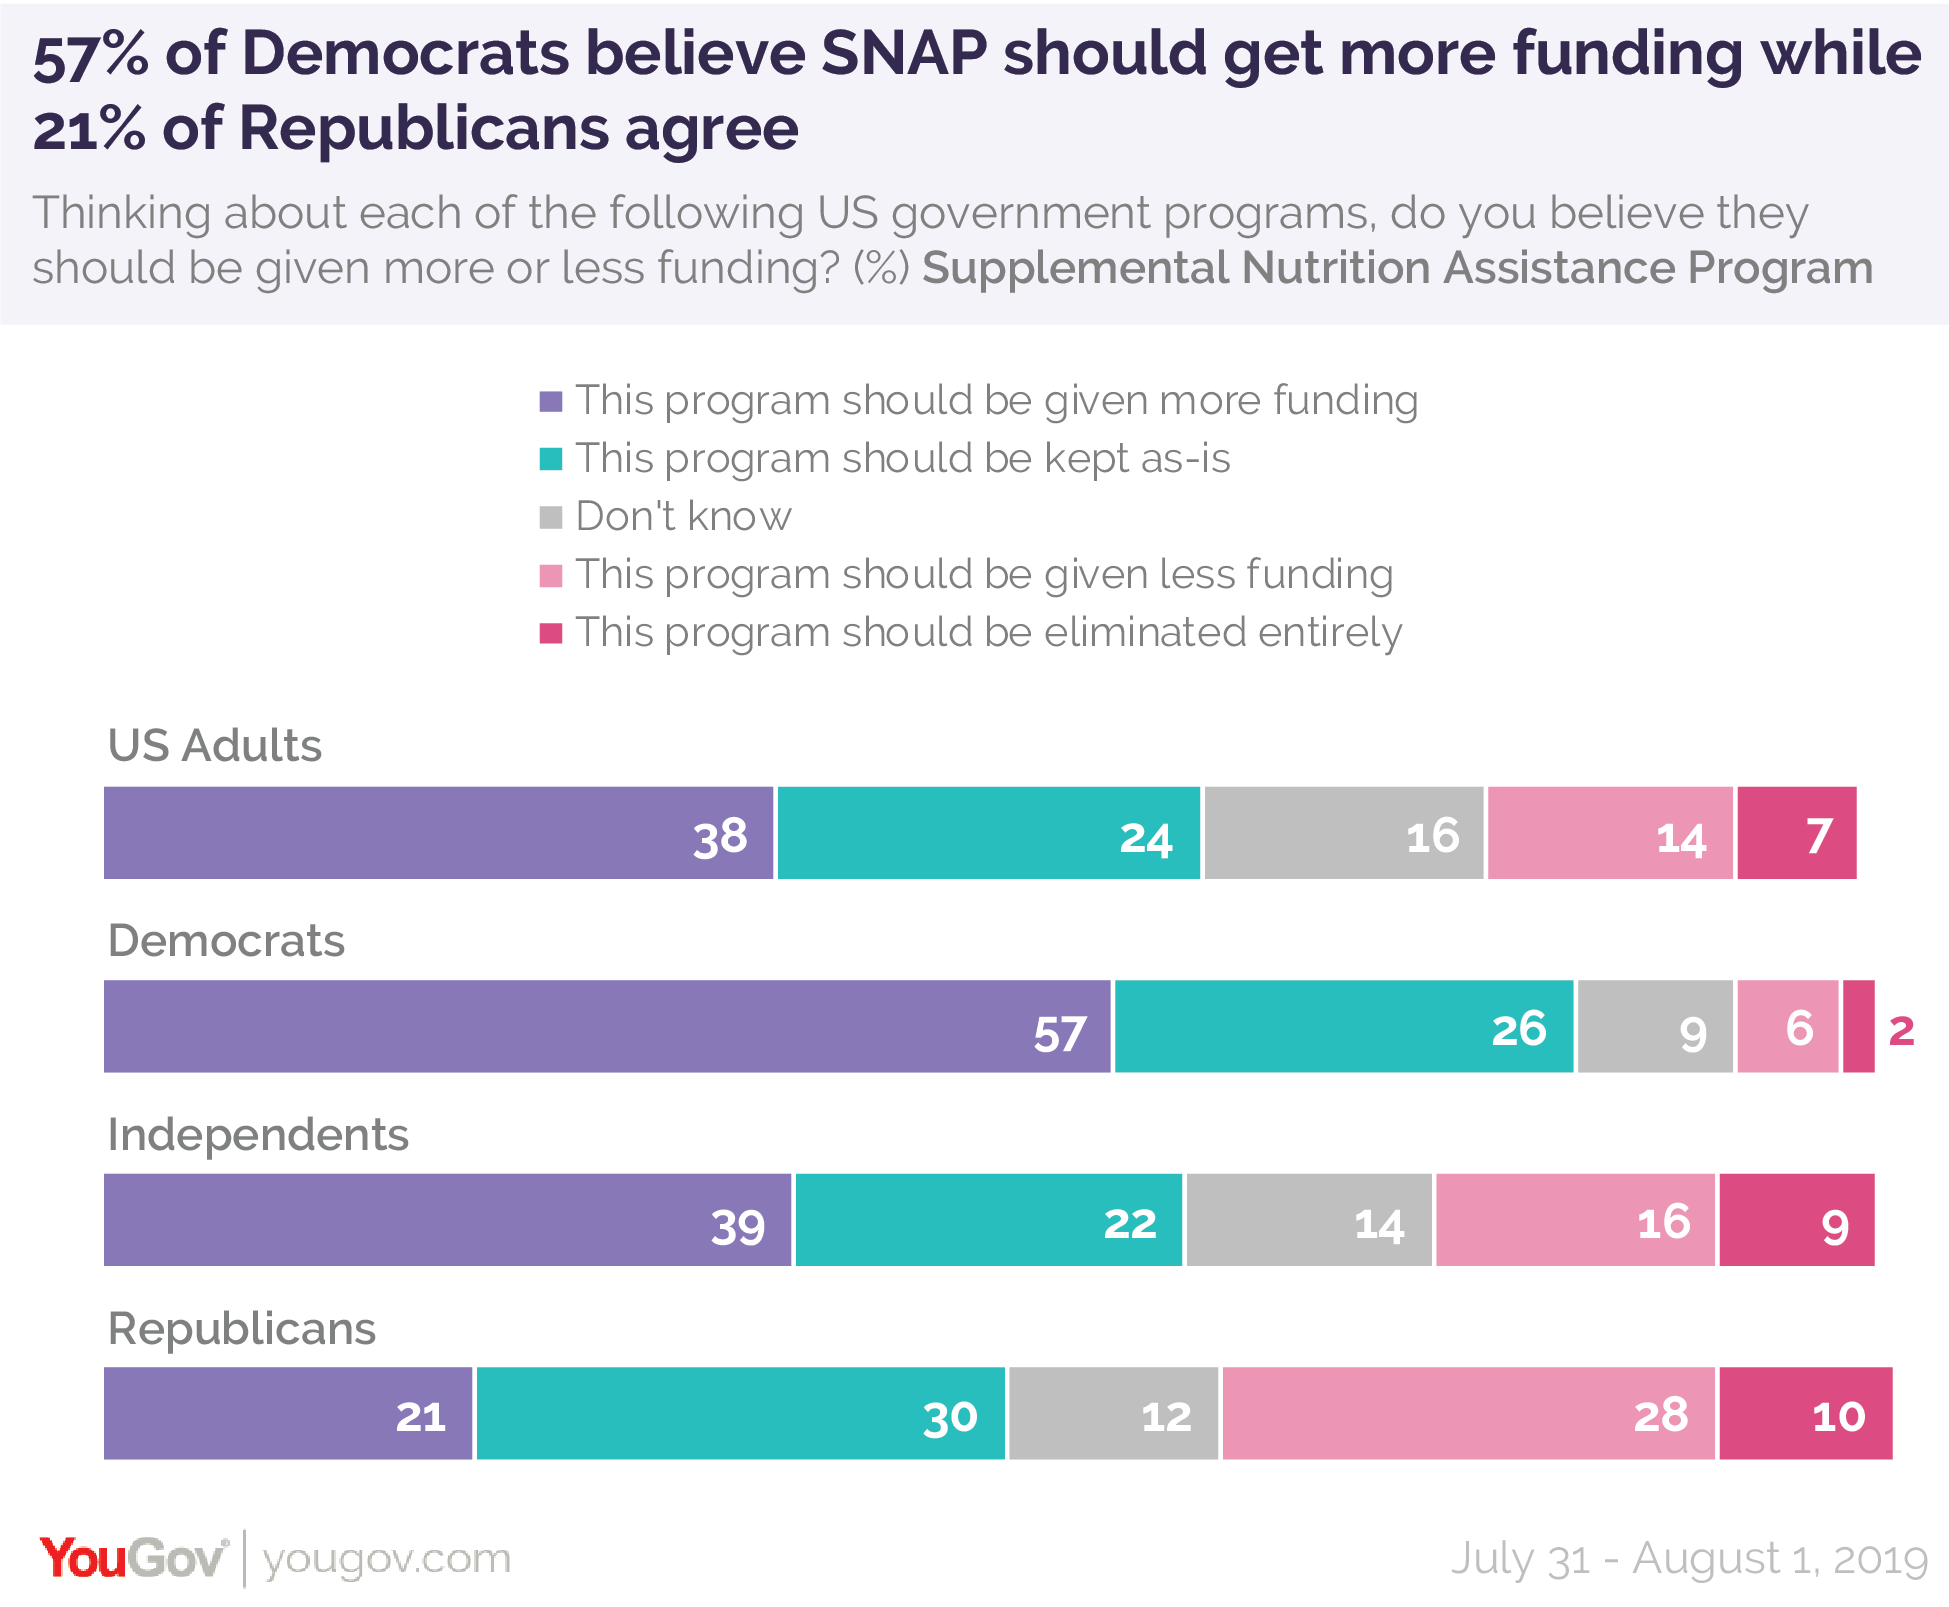 57% of Democrats believe SNAP should get more funding while 21% of Republicans agree